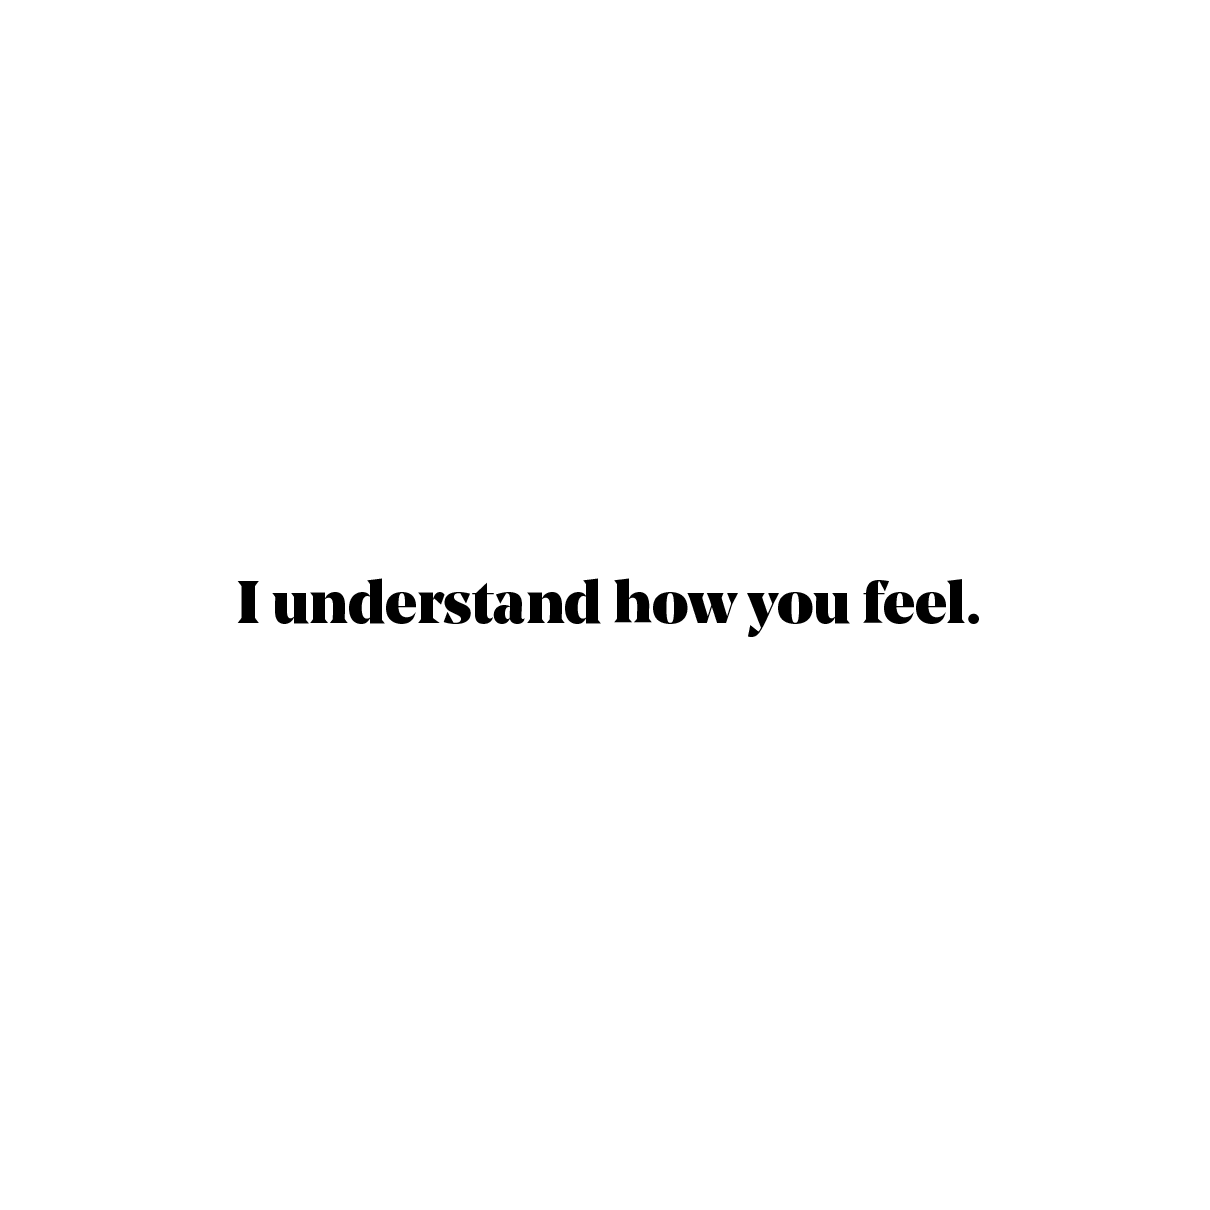 I understand how you feel